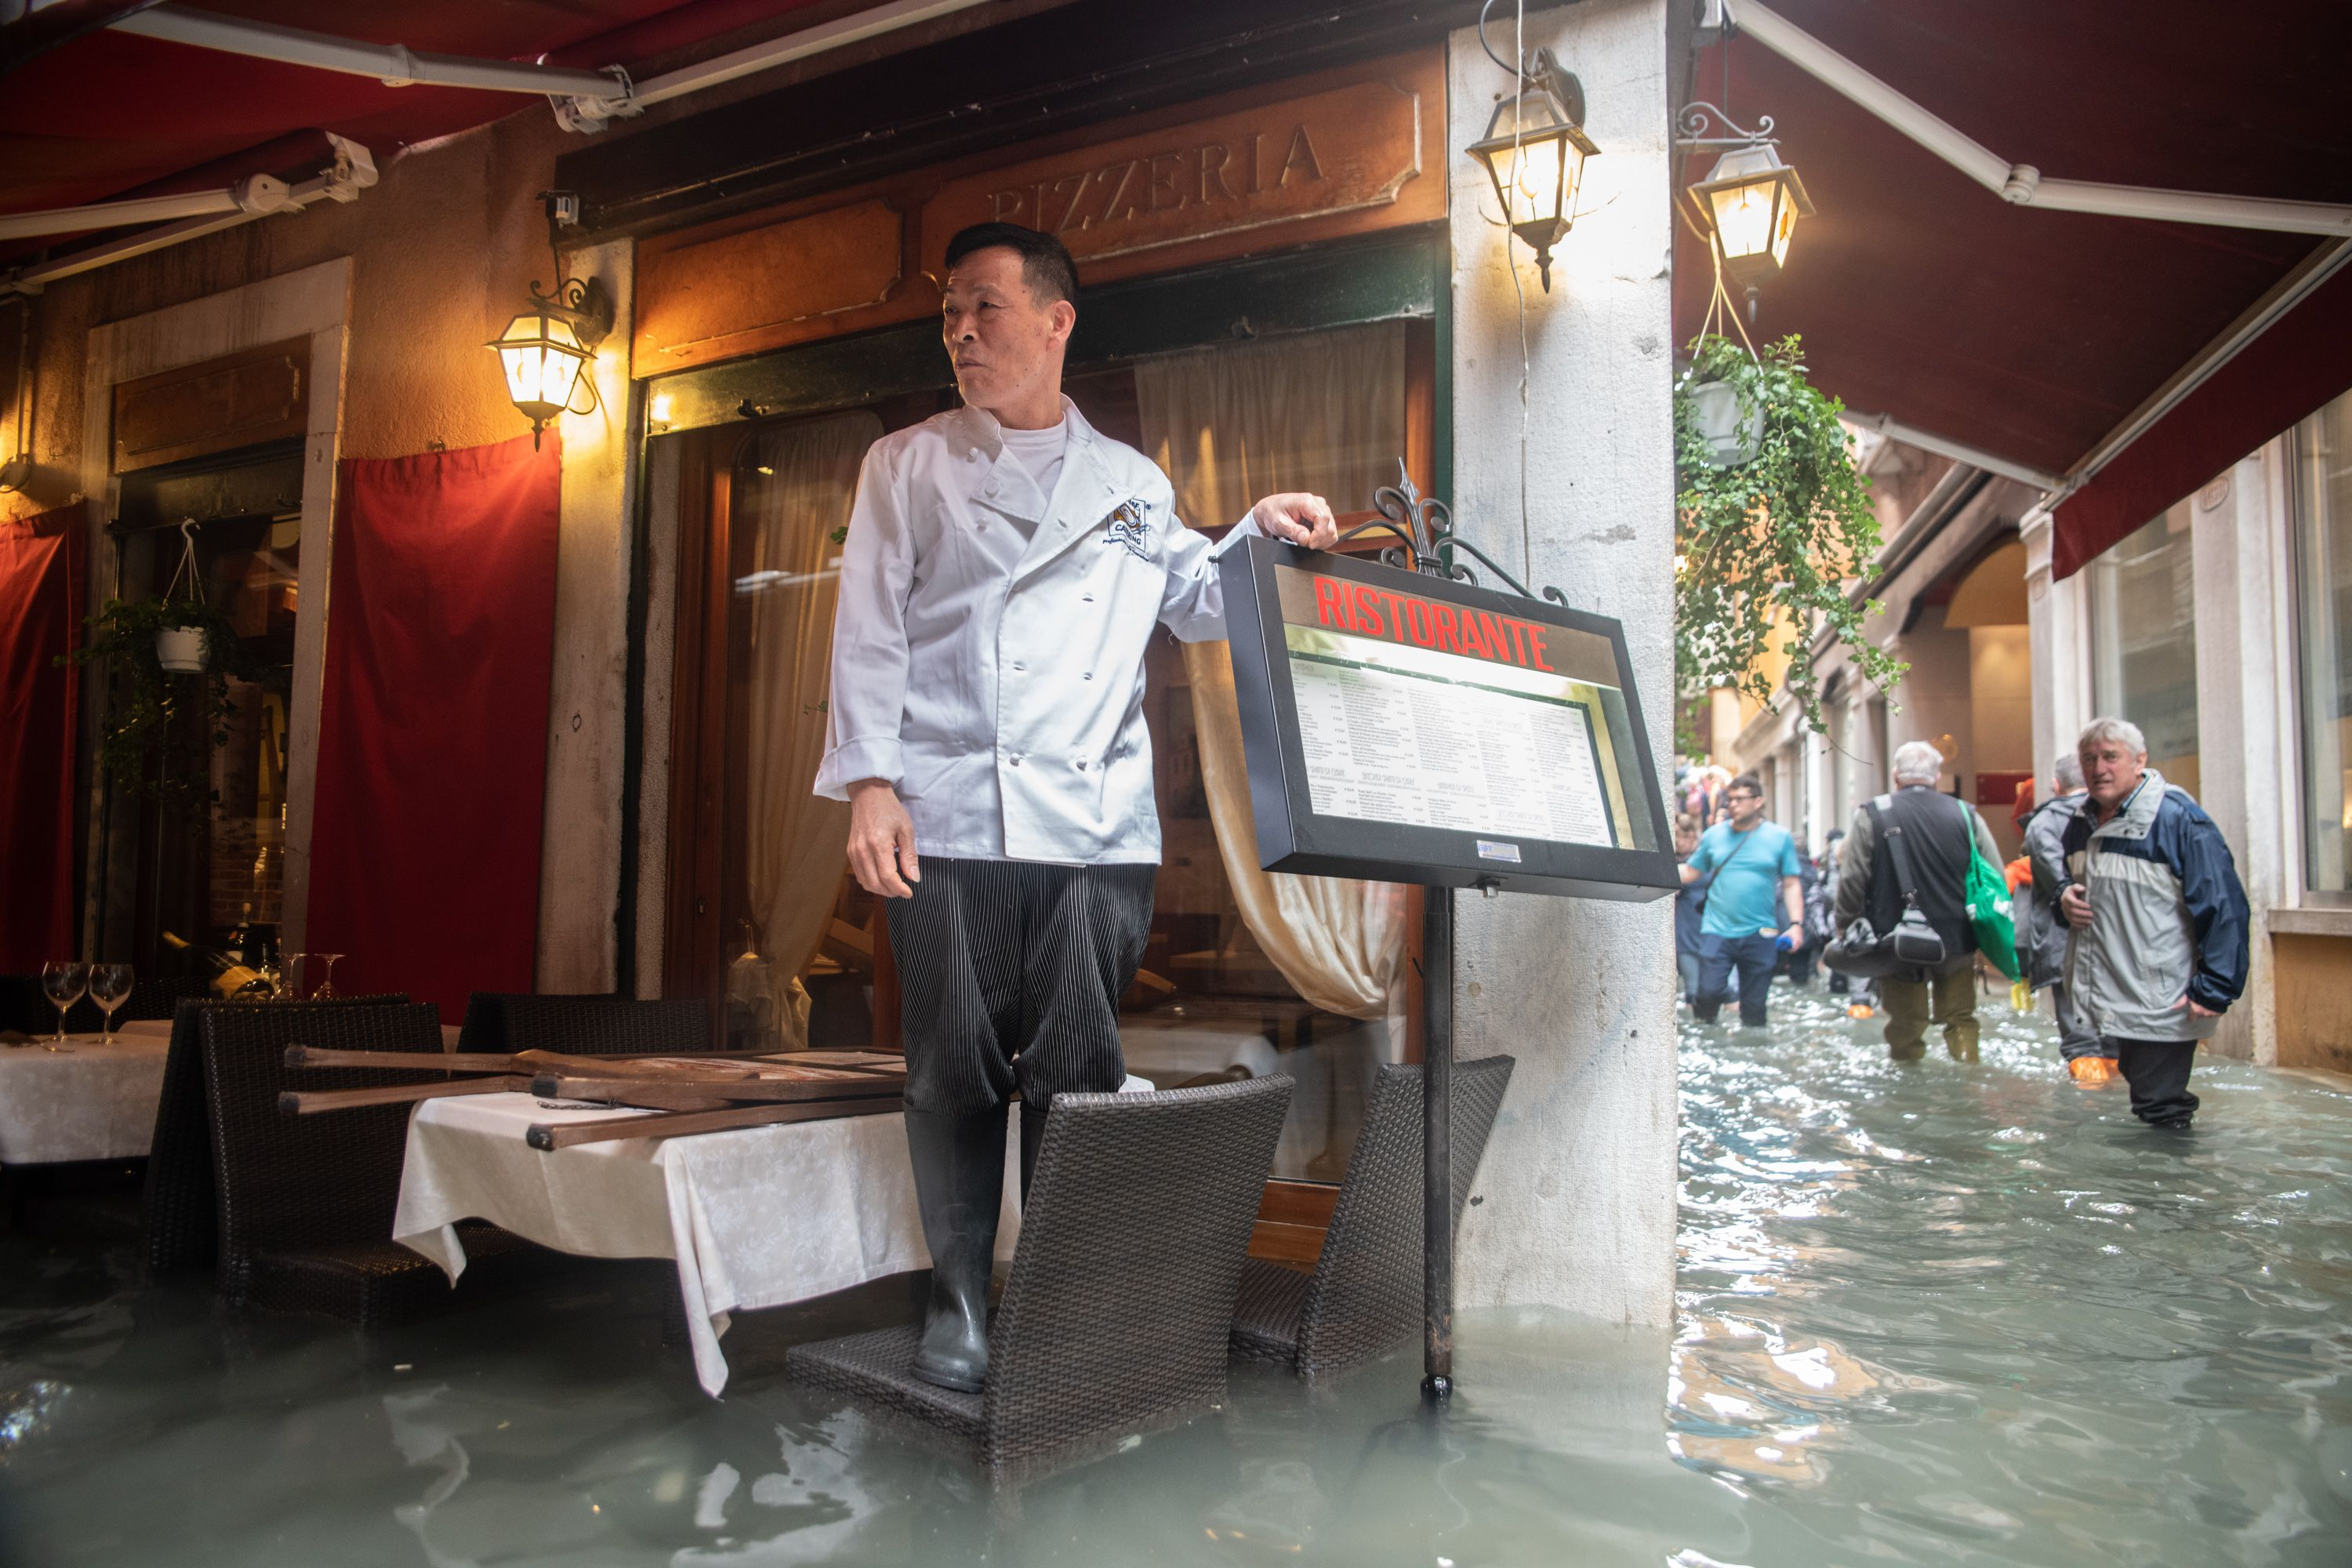 Man/restaurant owner standing on chair in restaurant to avoid flooded waters in venice.